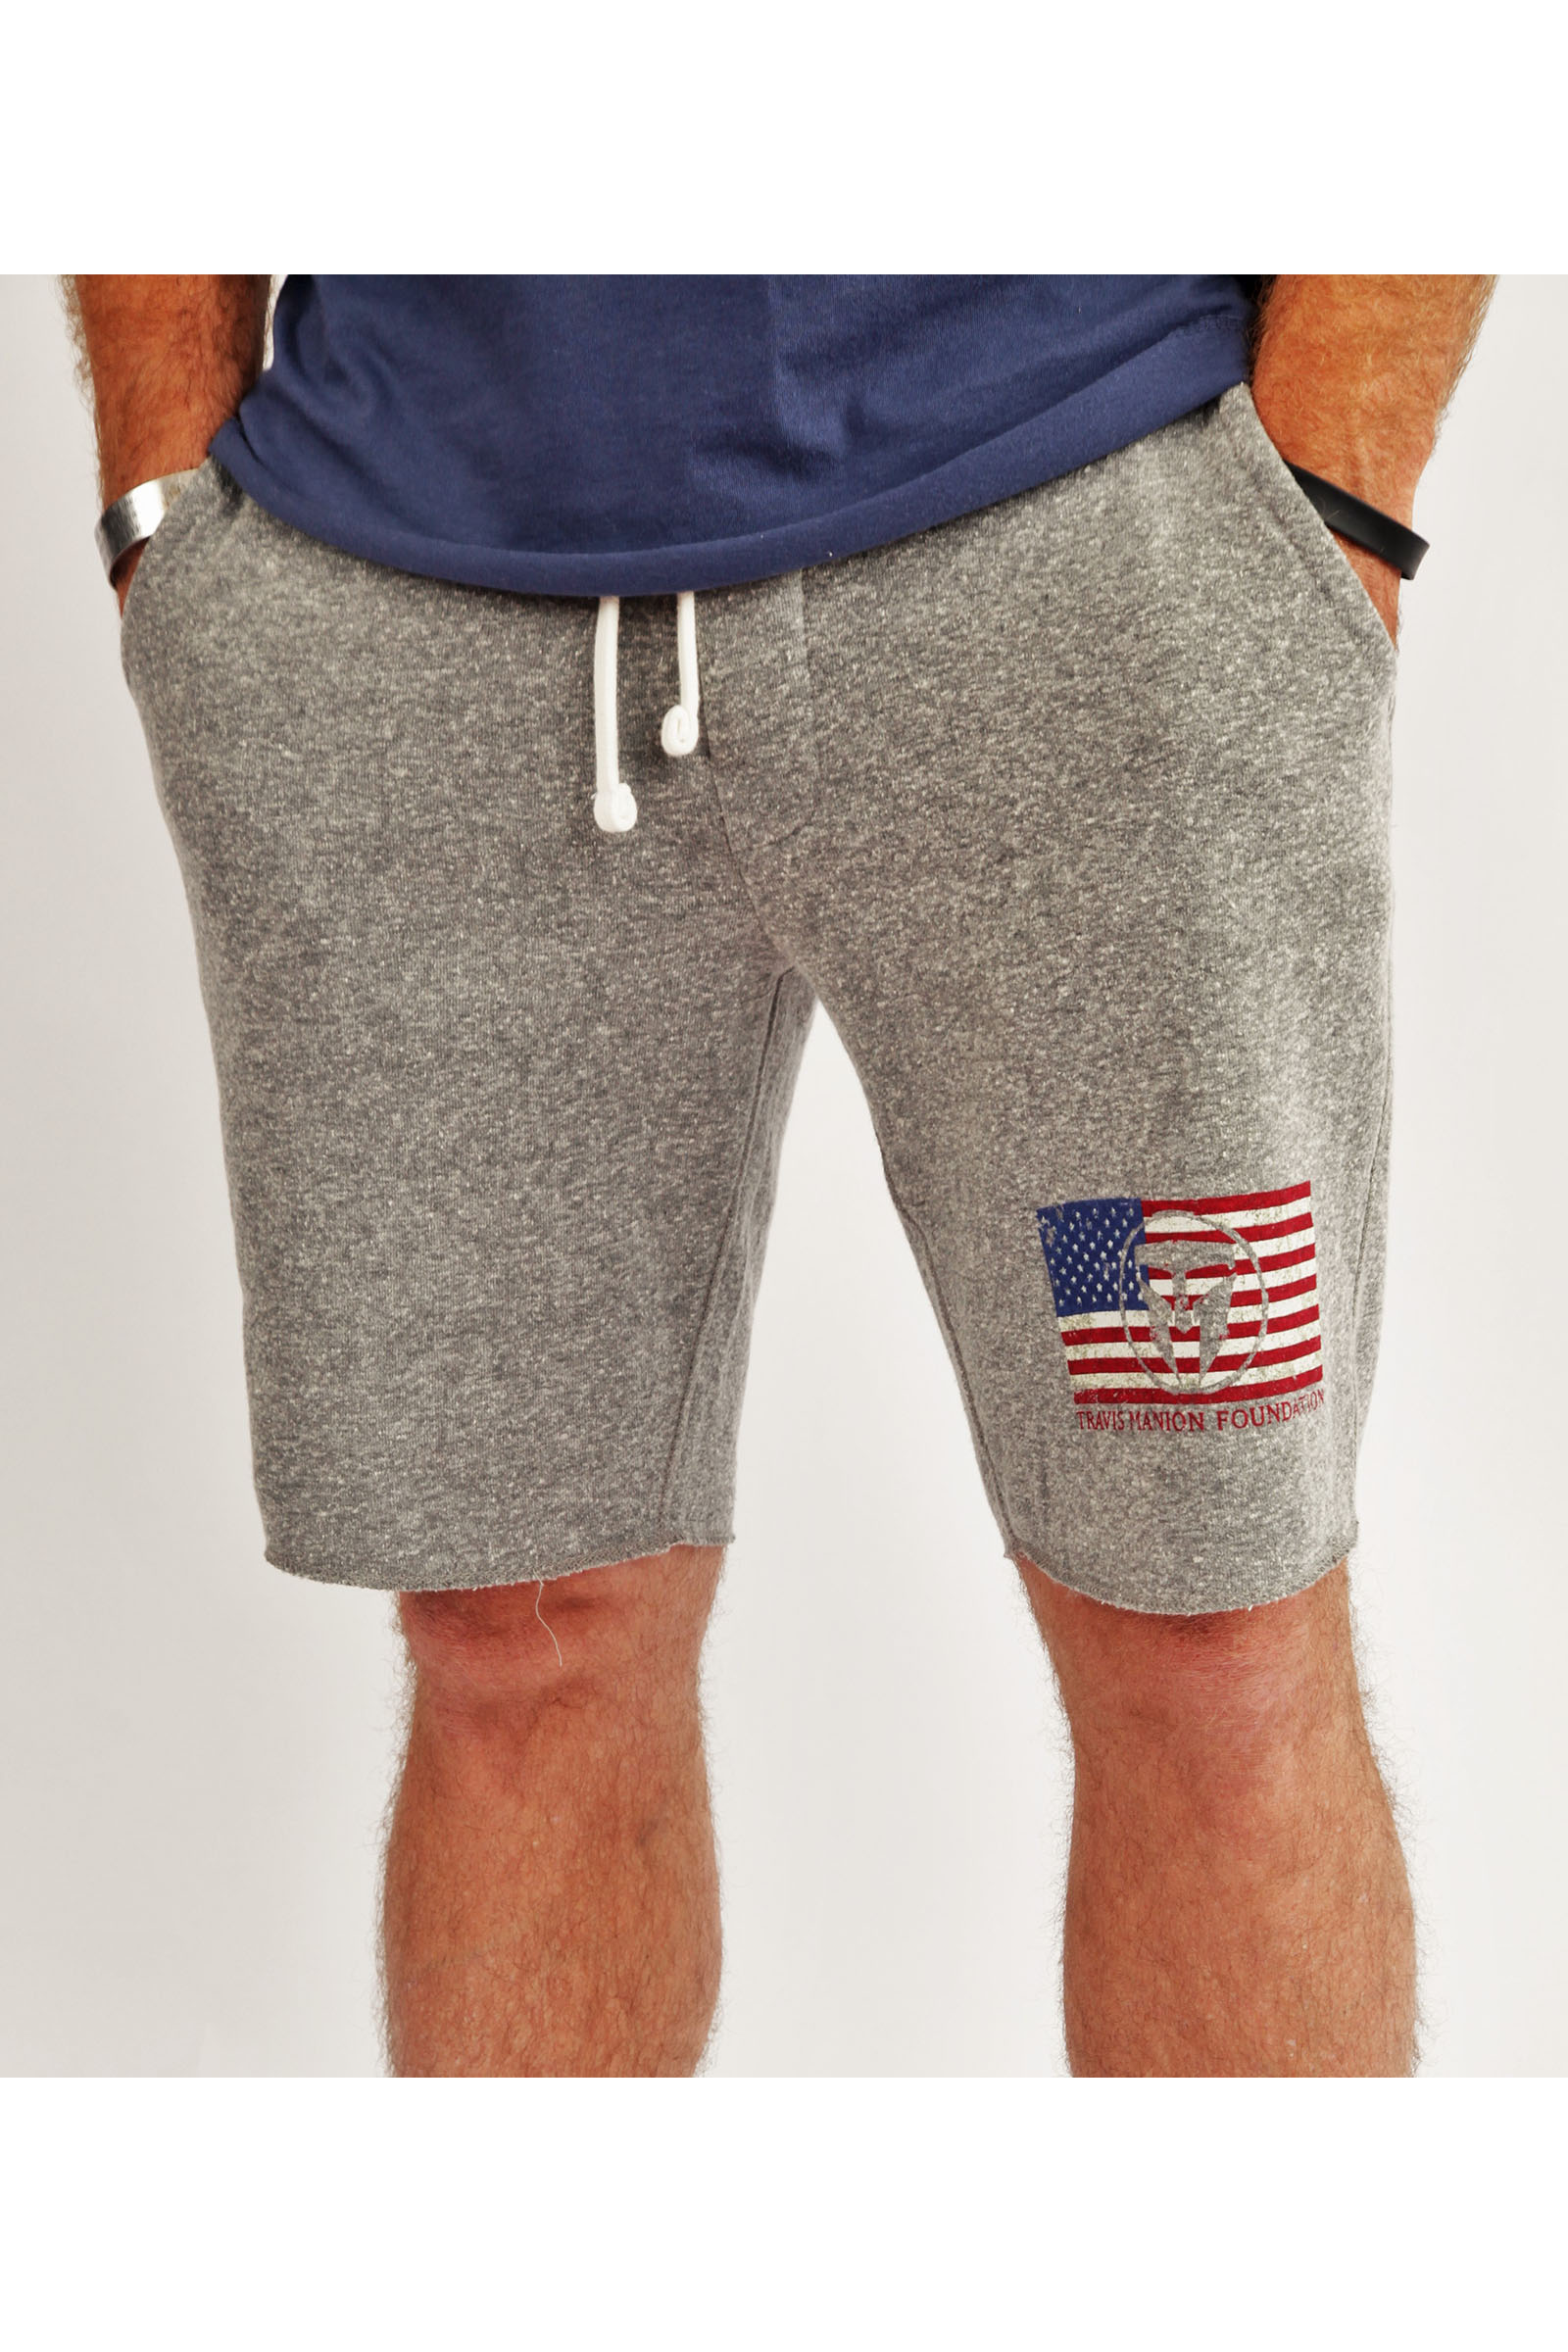 Travis Manion Foundation Collegiate Jogger Short